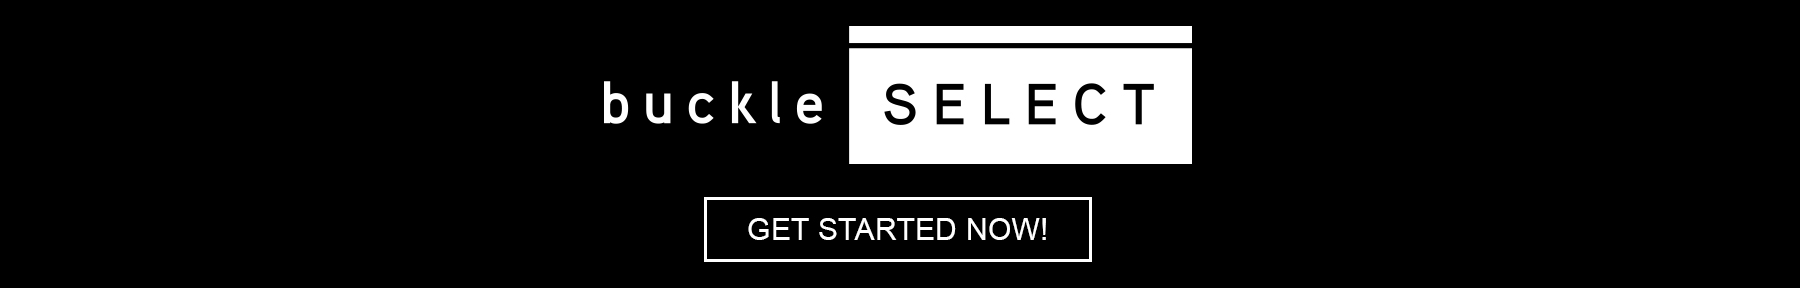 Buckle Select More Information or Get Started Banner